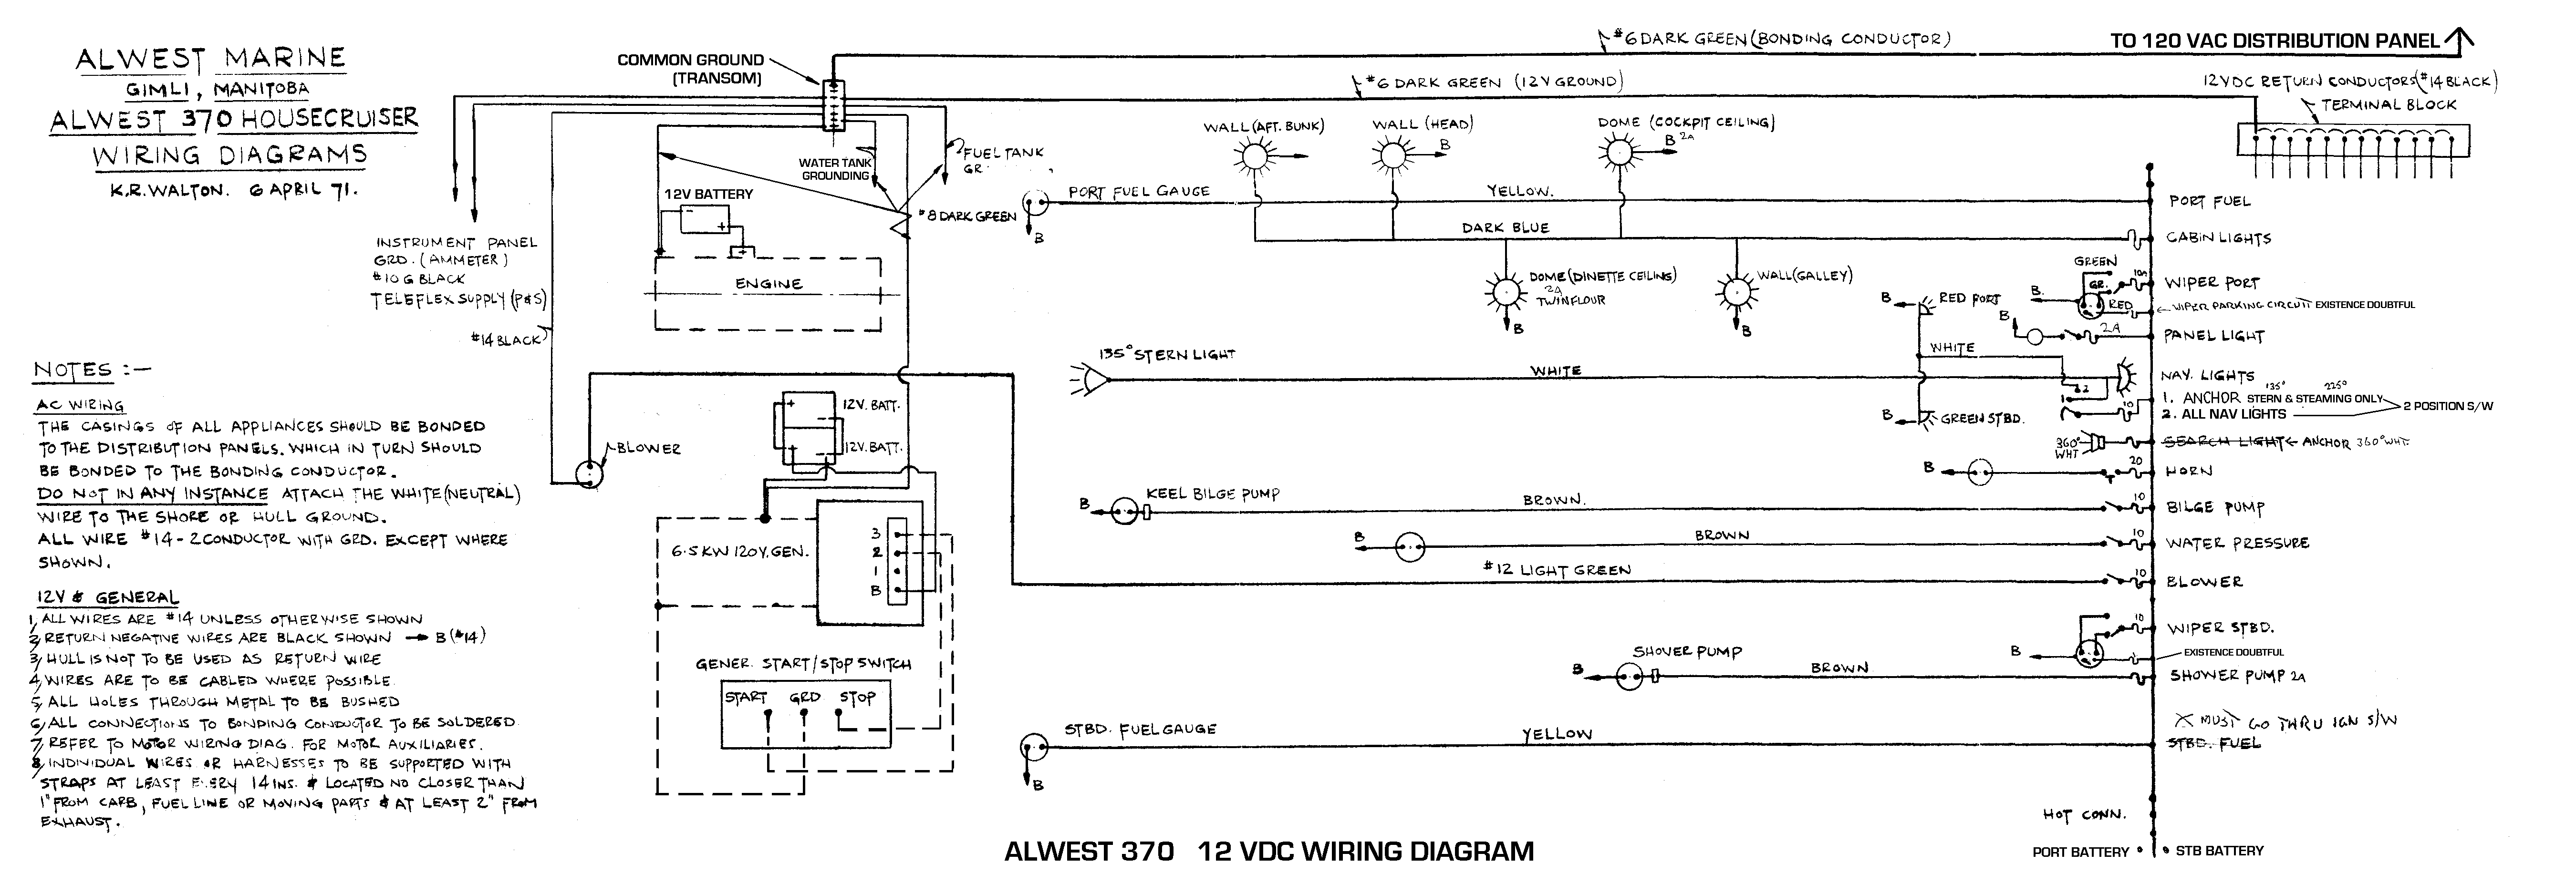 Electrical 12 Vdc System Wiring Diagrams The Dc On Alwest Is Generally Of Poor Quality But This Common To Boats From Era Appears Be Automotive Grade With Untinned